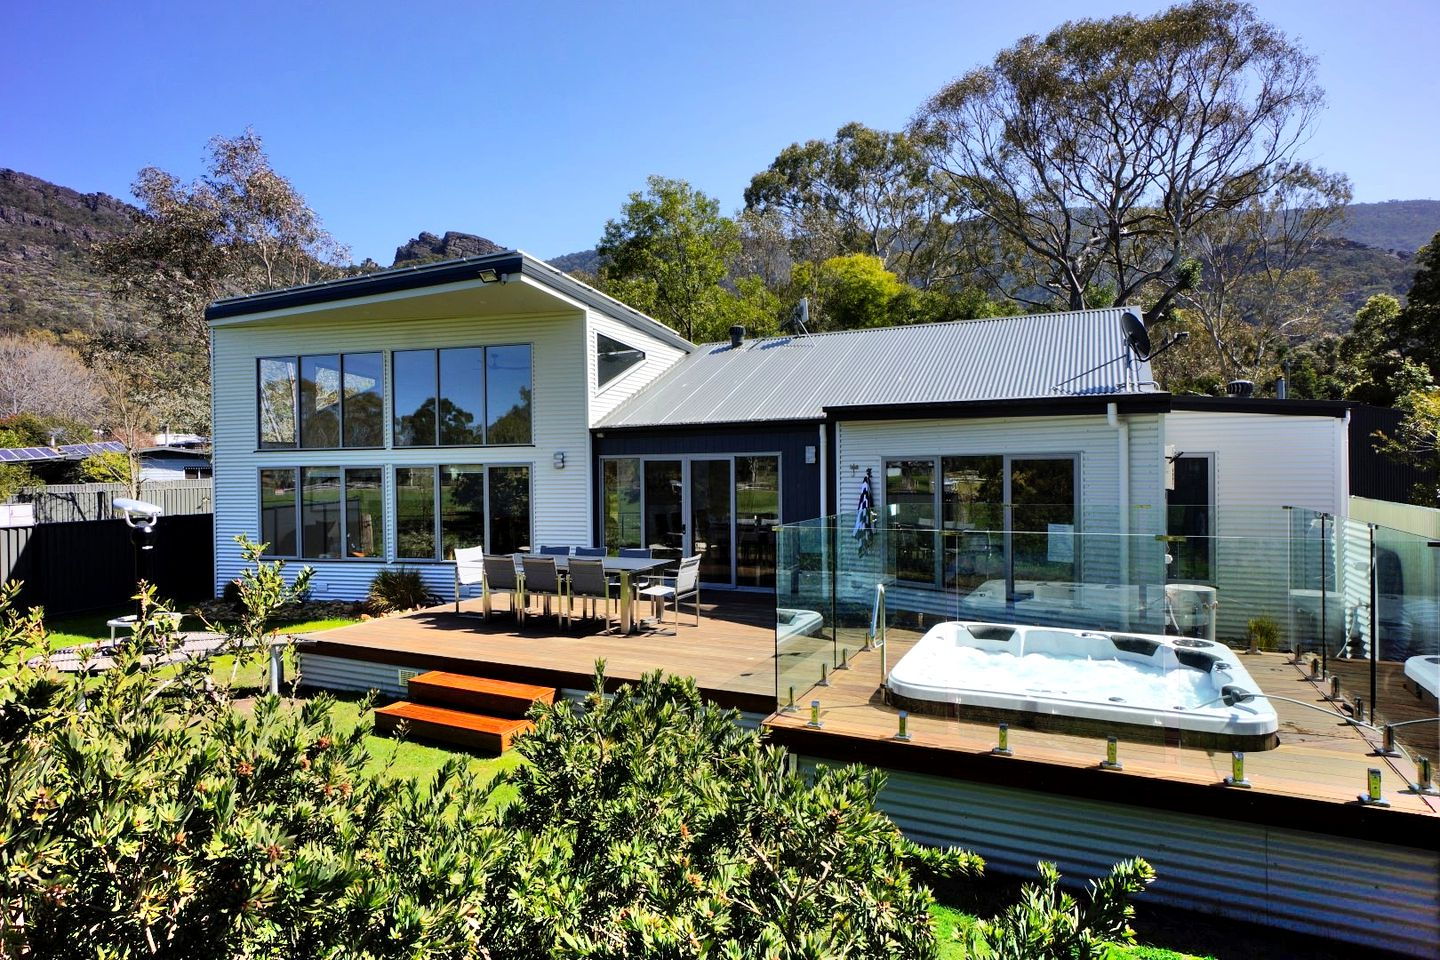 This Grampians luxury accommodation is perfect for a family getaway in Victoria. The deck area comes with a spa tub and plenty of seating!